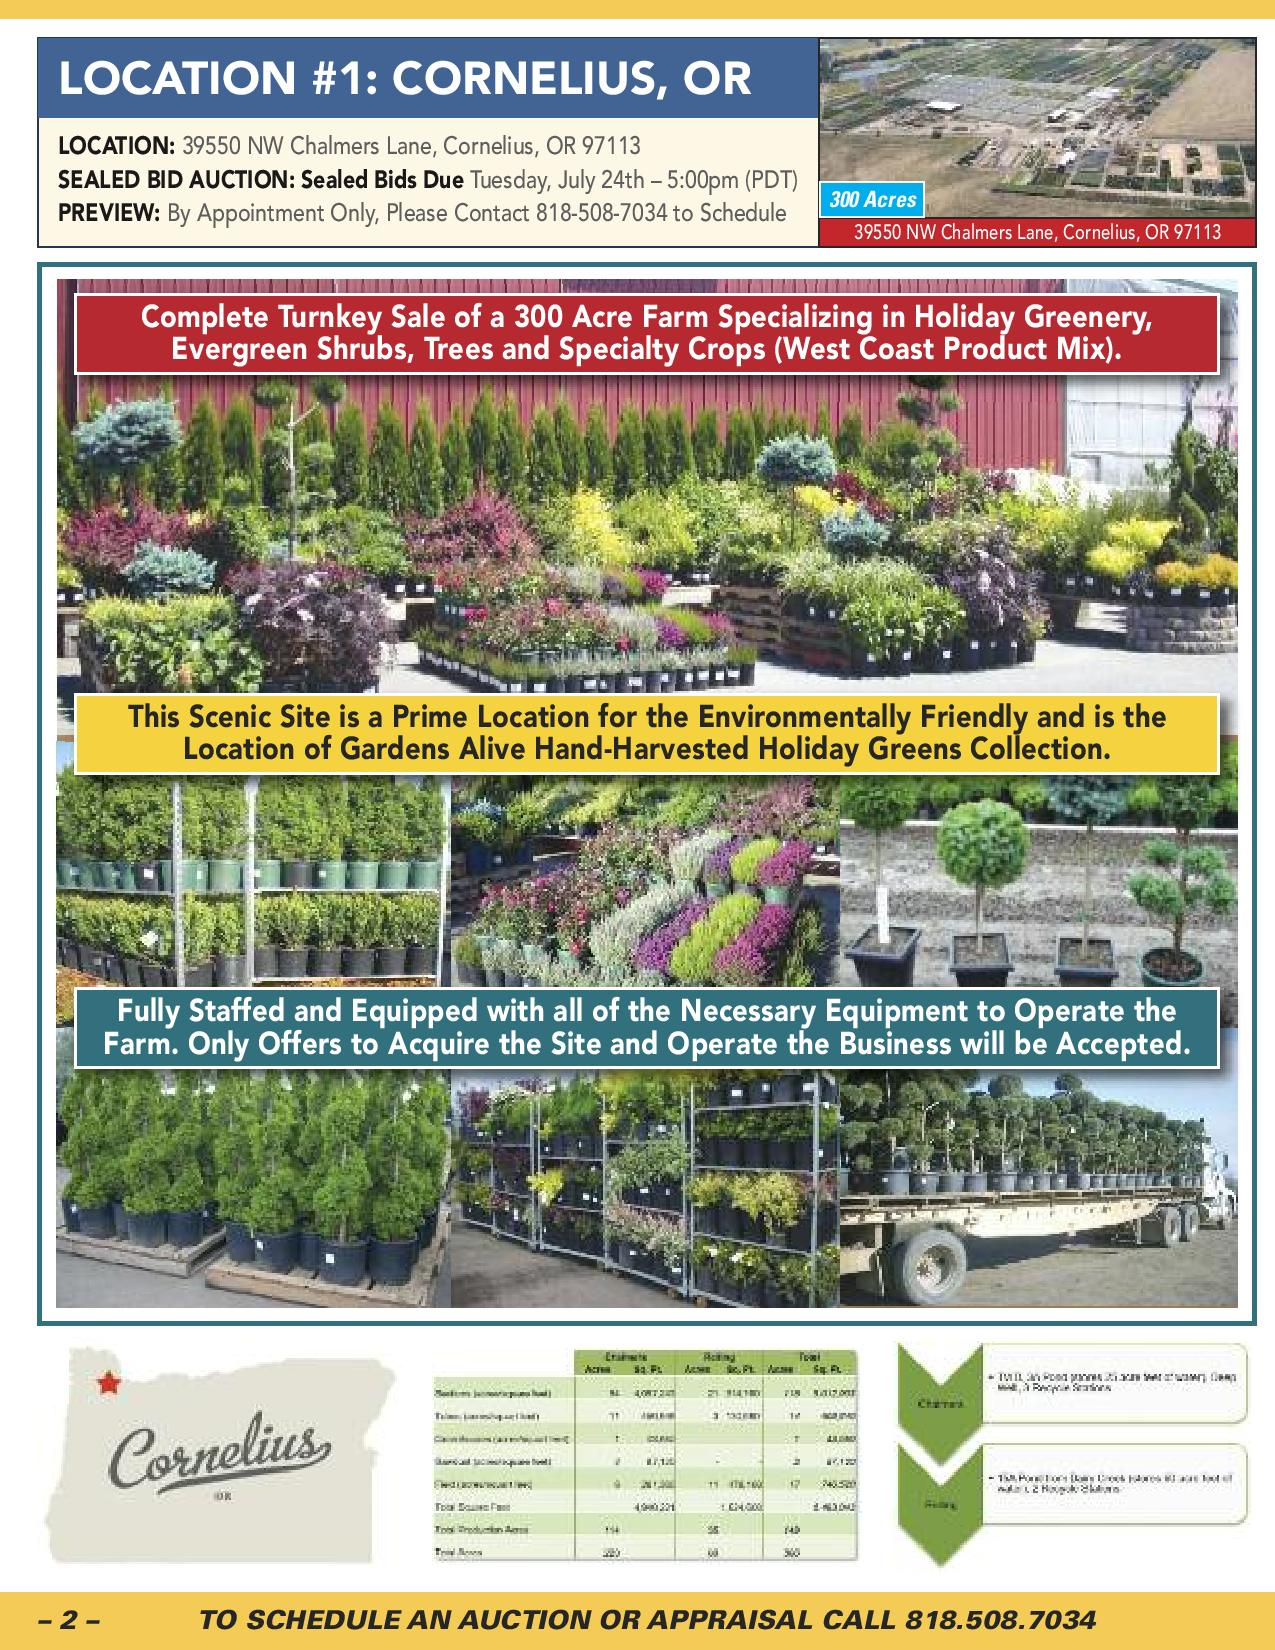 Lot 0 - Description: GARDENS ALIVE FARMS – 453 ACRE FARM SPECIALIZING IN SMALL FRUITS, GROUND COVERS,